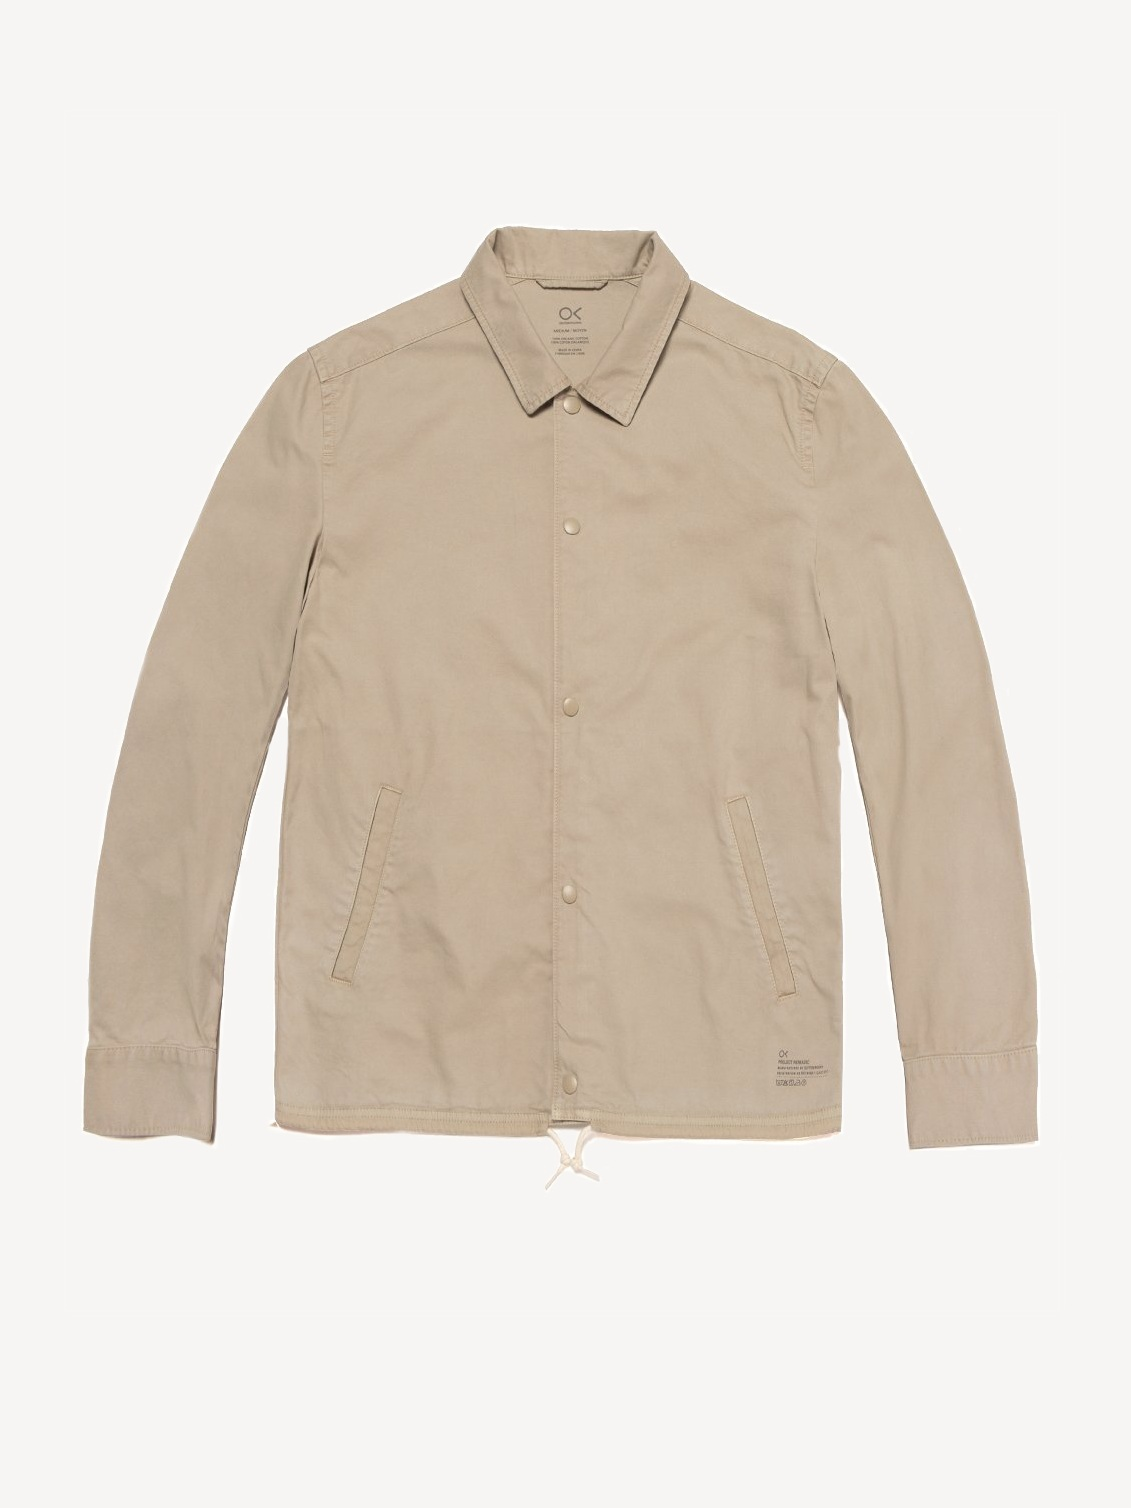 Father's Day Gift Guide // Coach's Jacket - Outerknown